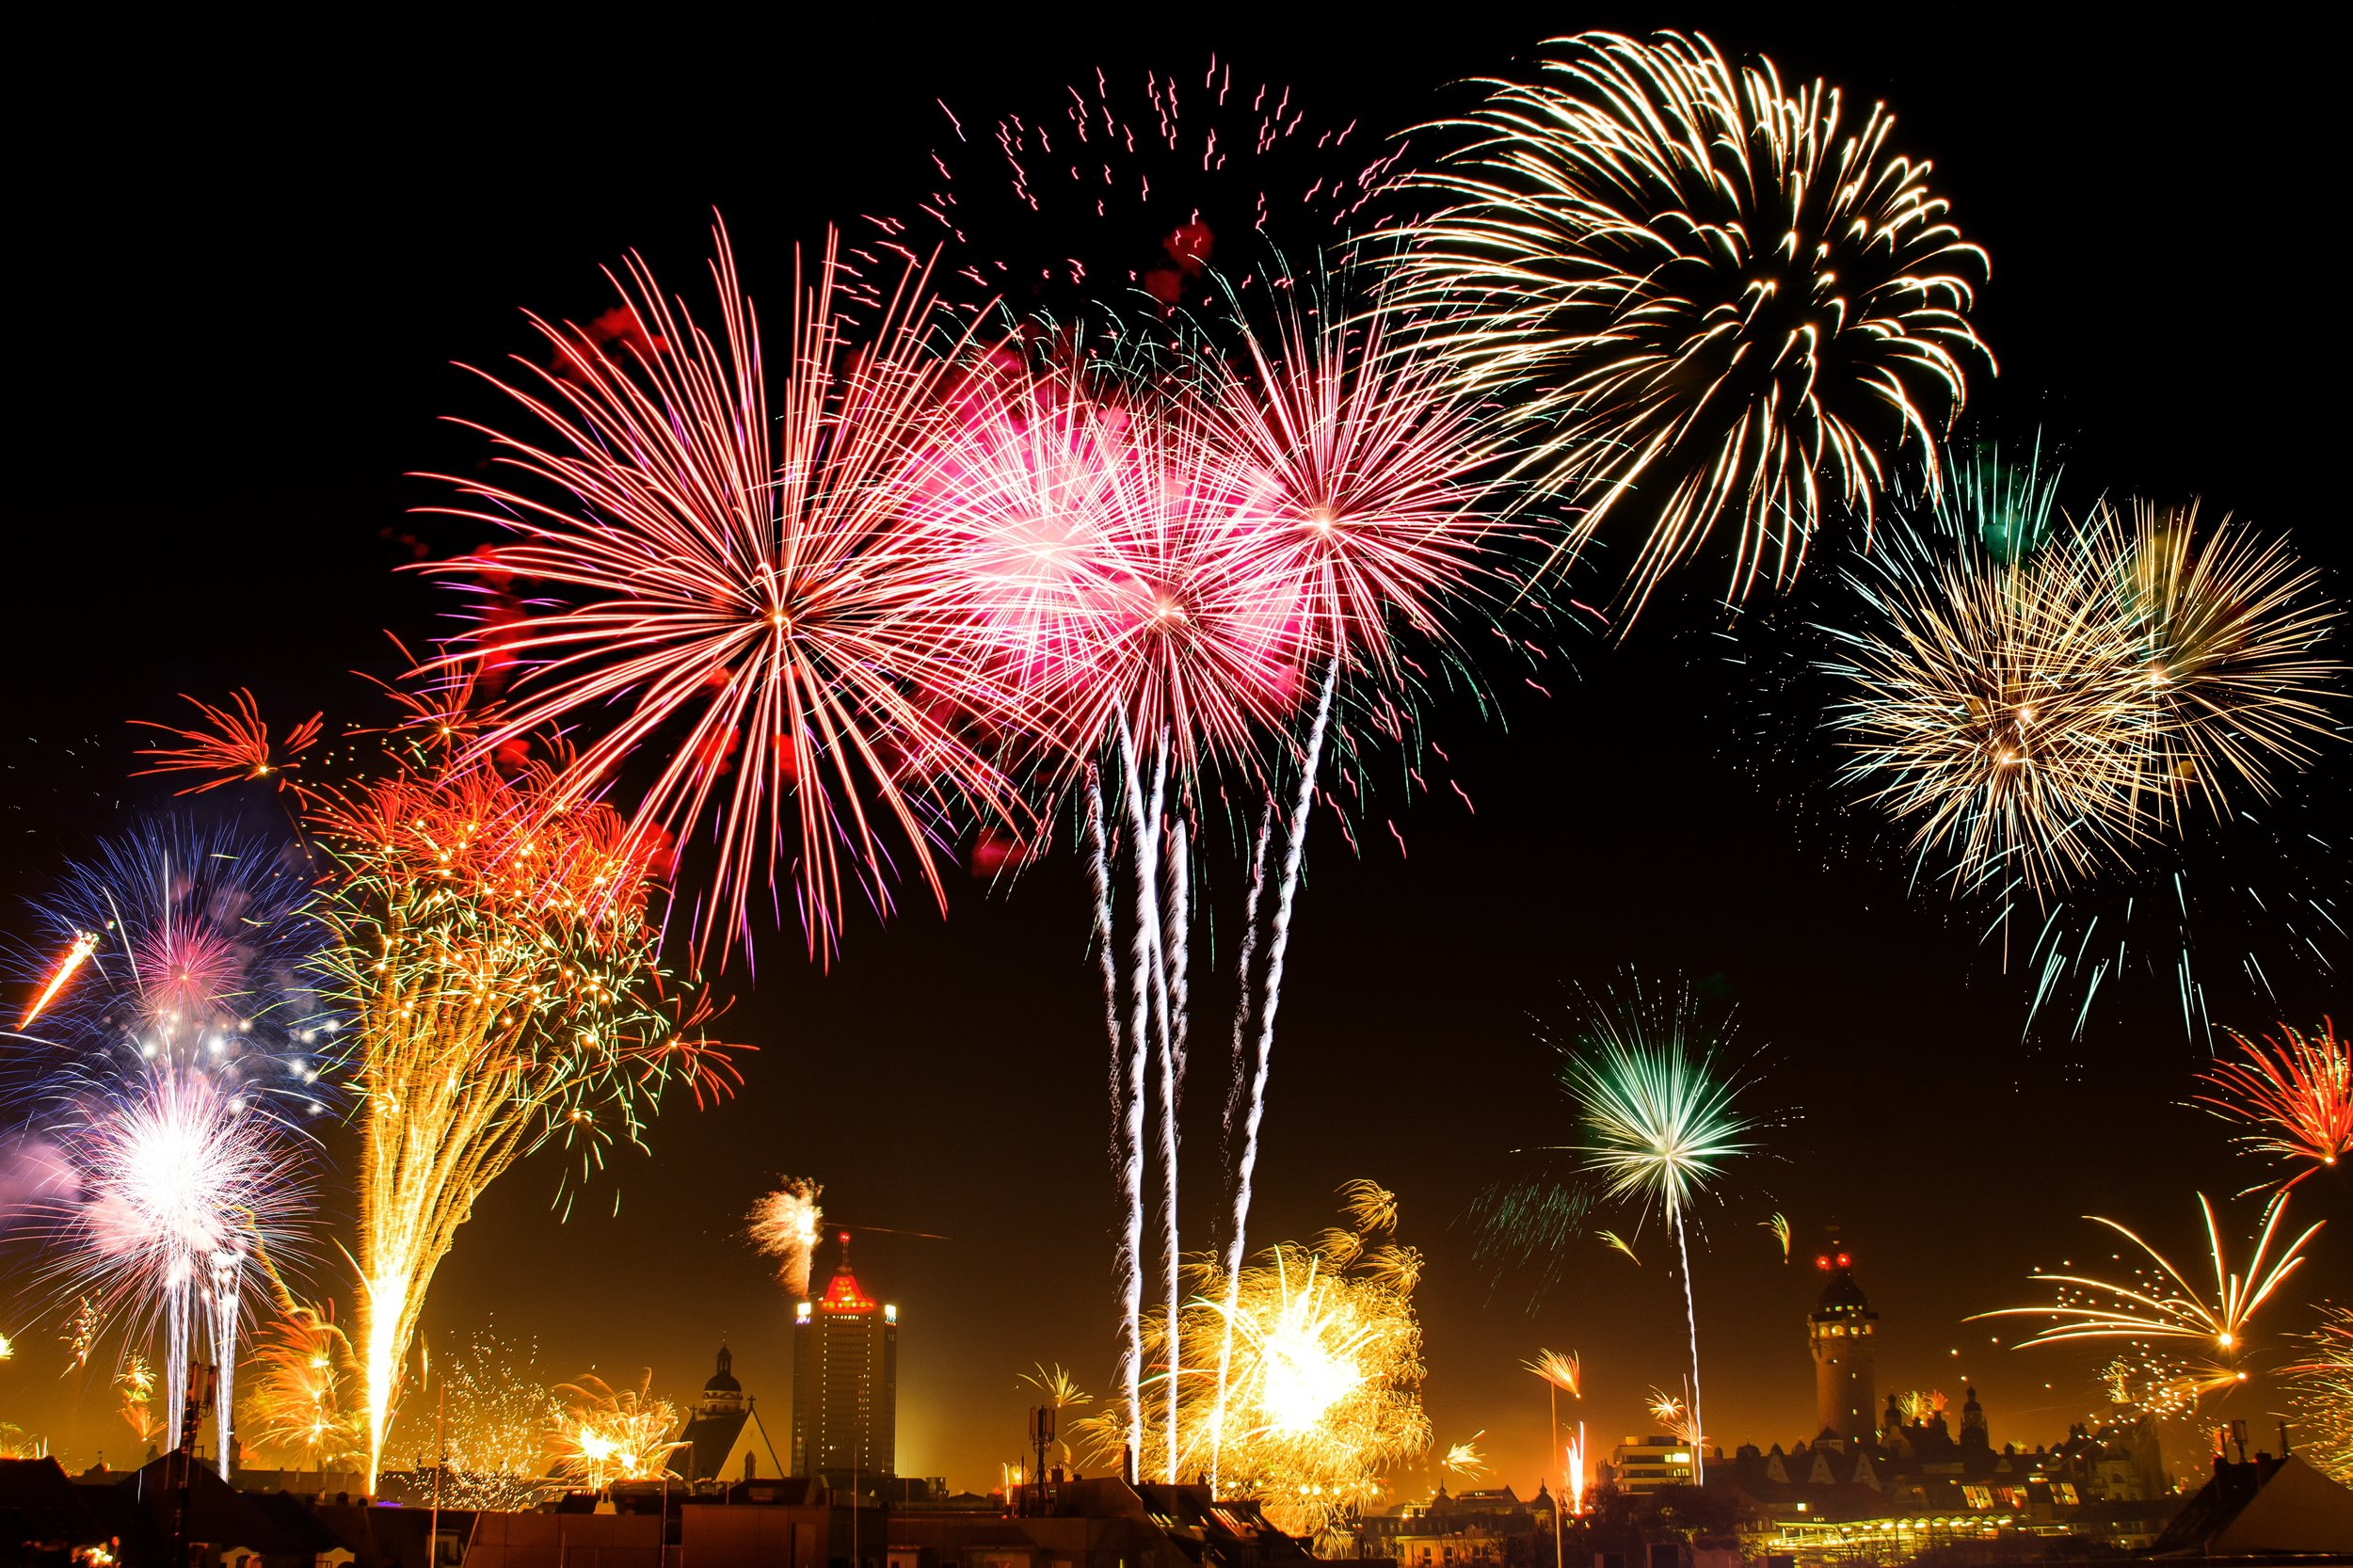 Multiple colour fireworks exploding in the sky with skyscrapers in the background